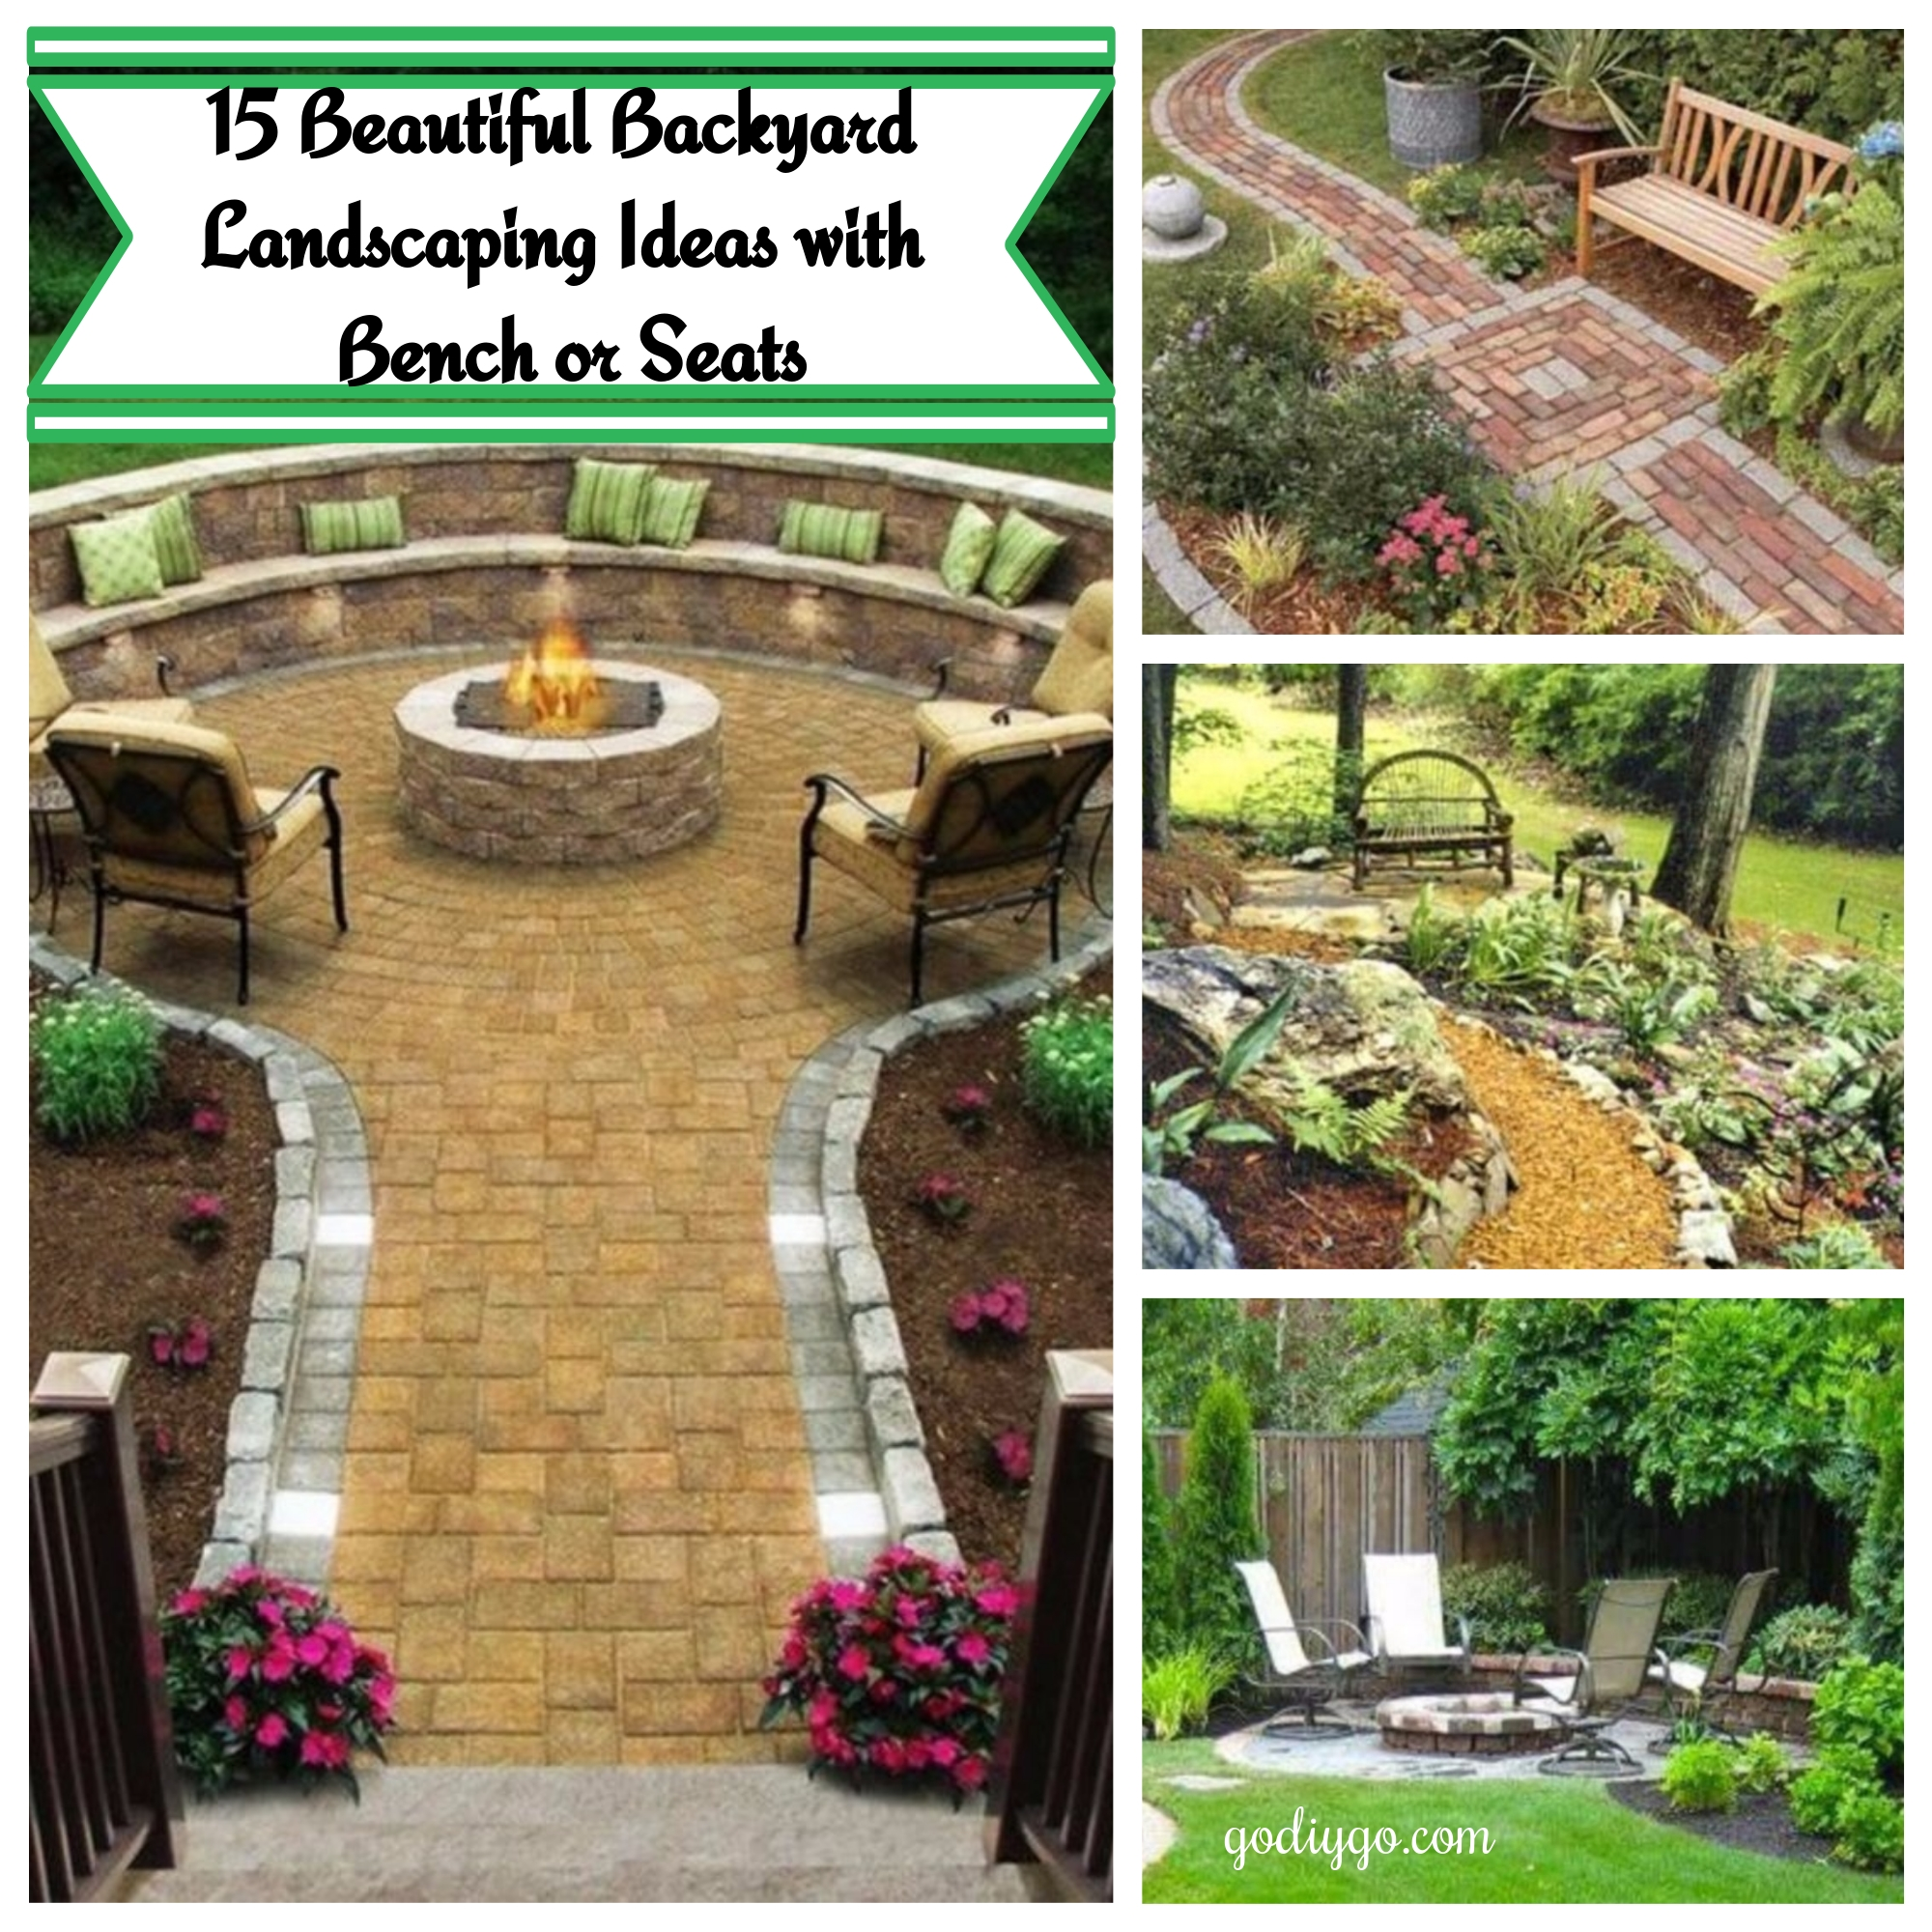 15 Beautiful Backyard Landscaping Ideas With Bench Or